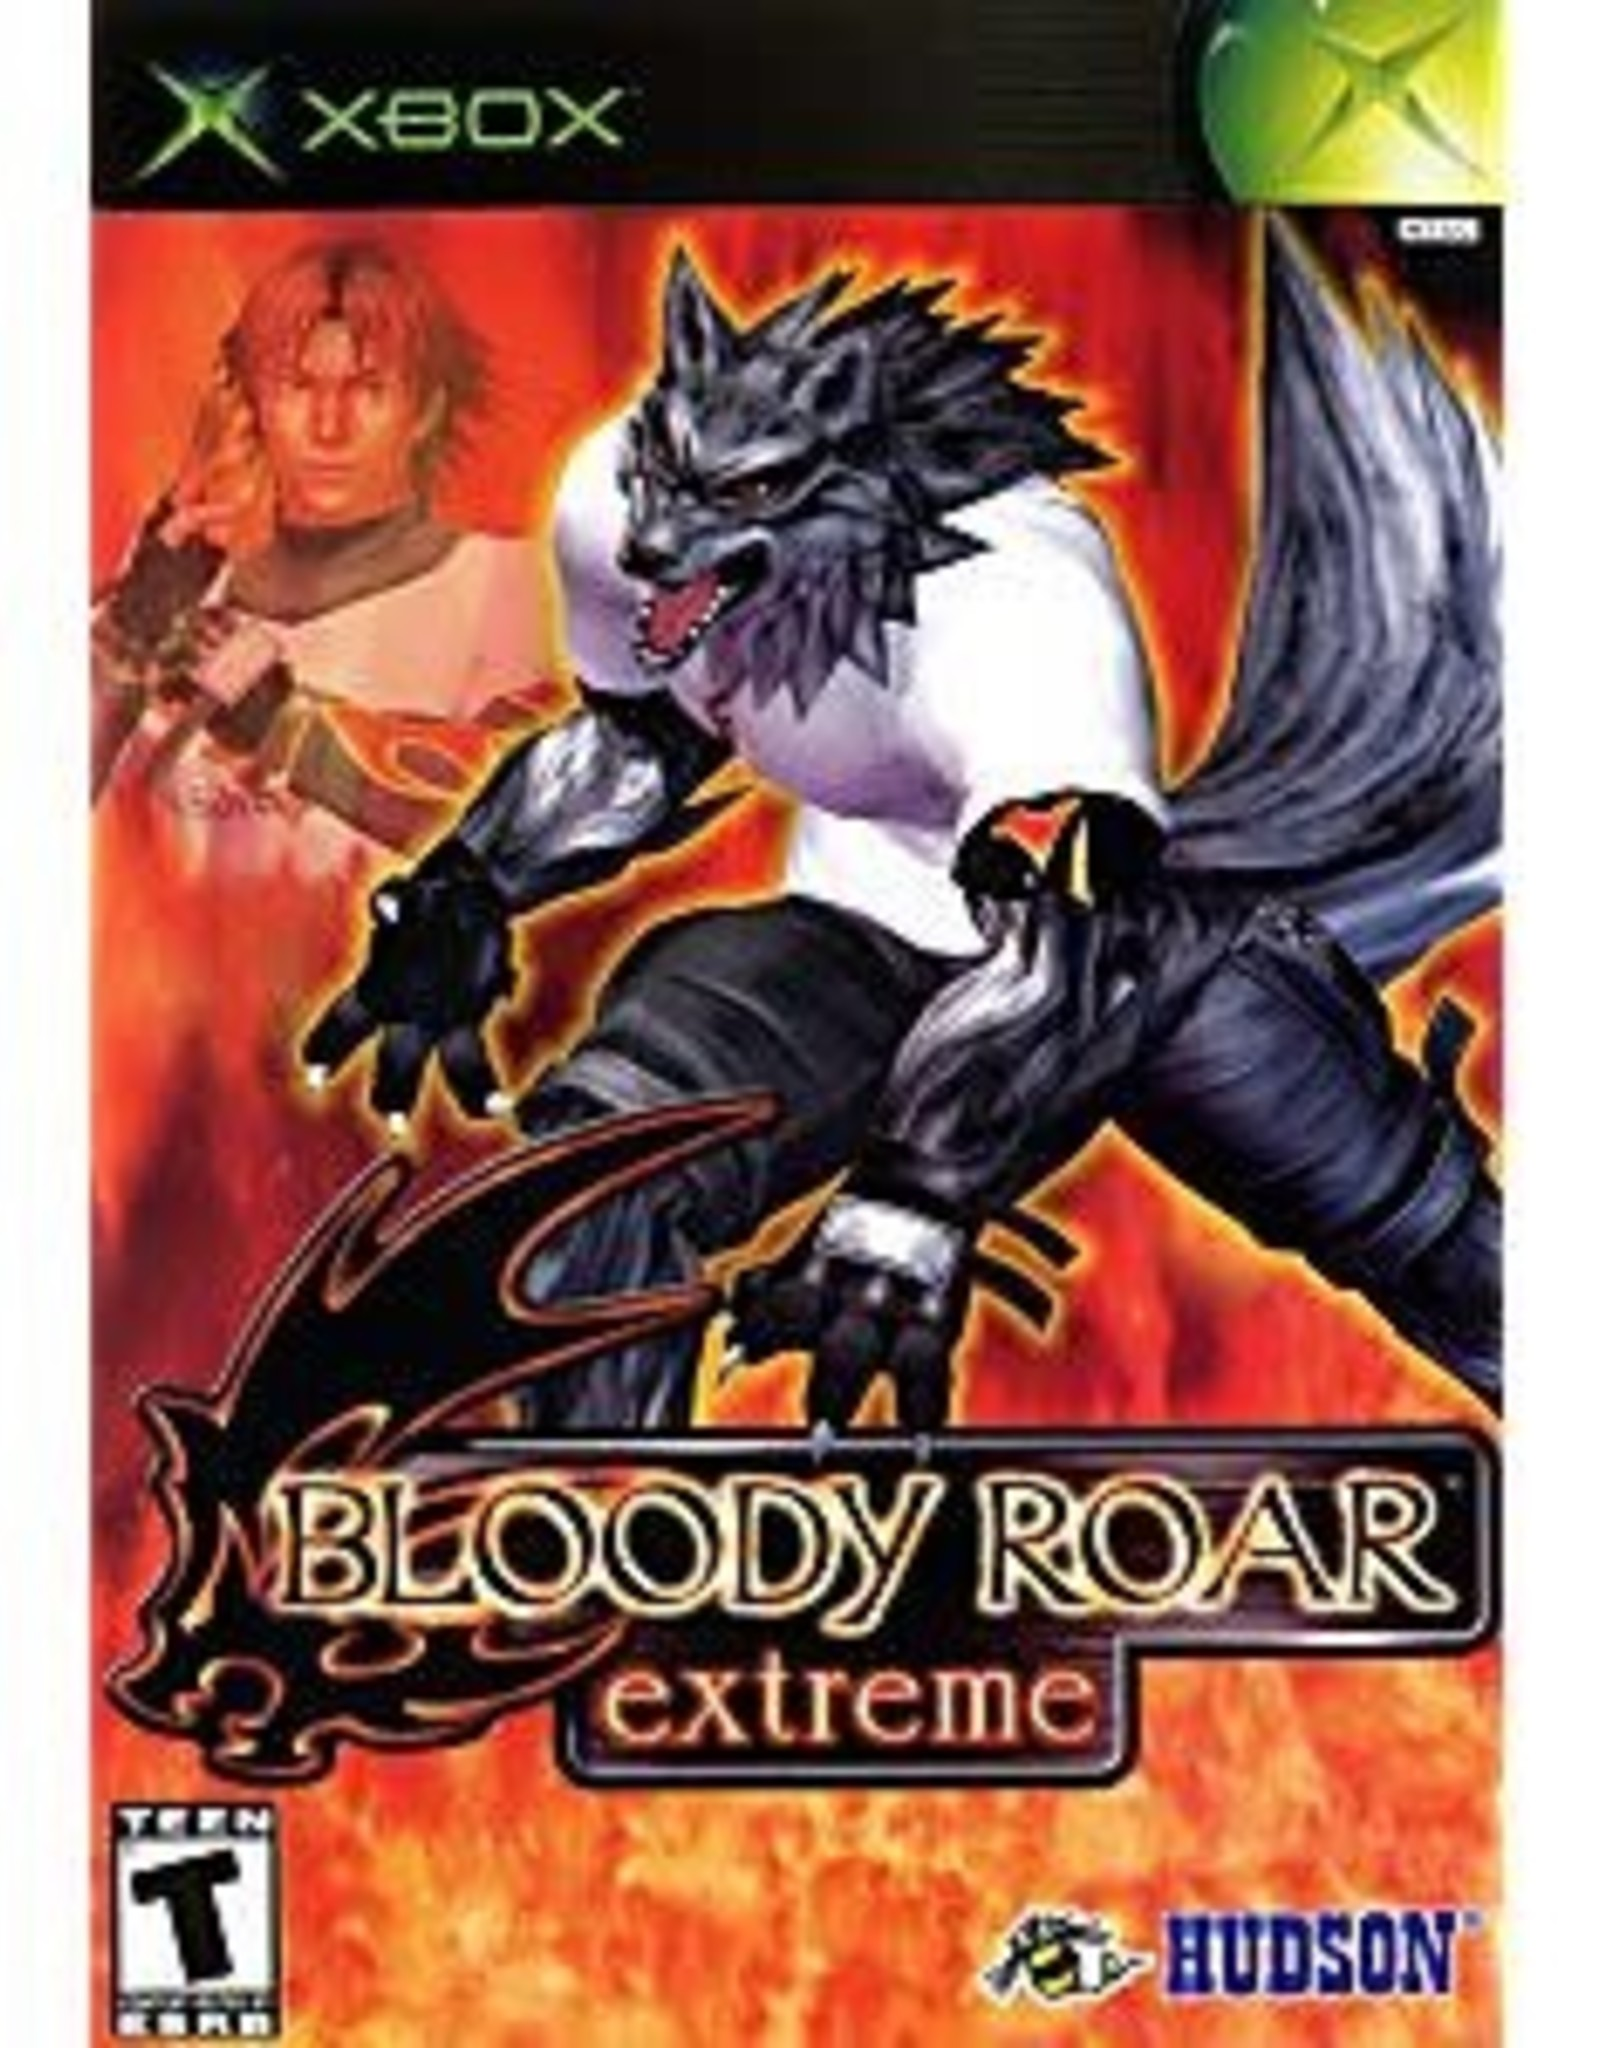 Xbox Bloody Roar Extreme (No Manual)